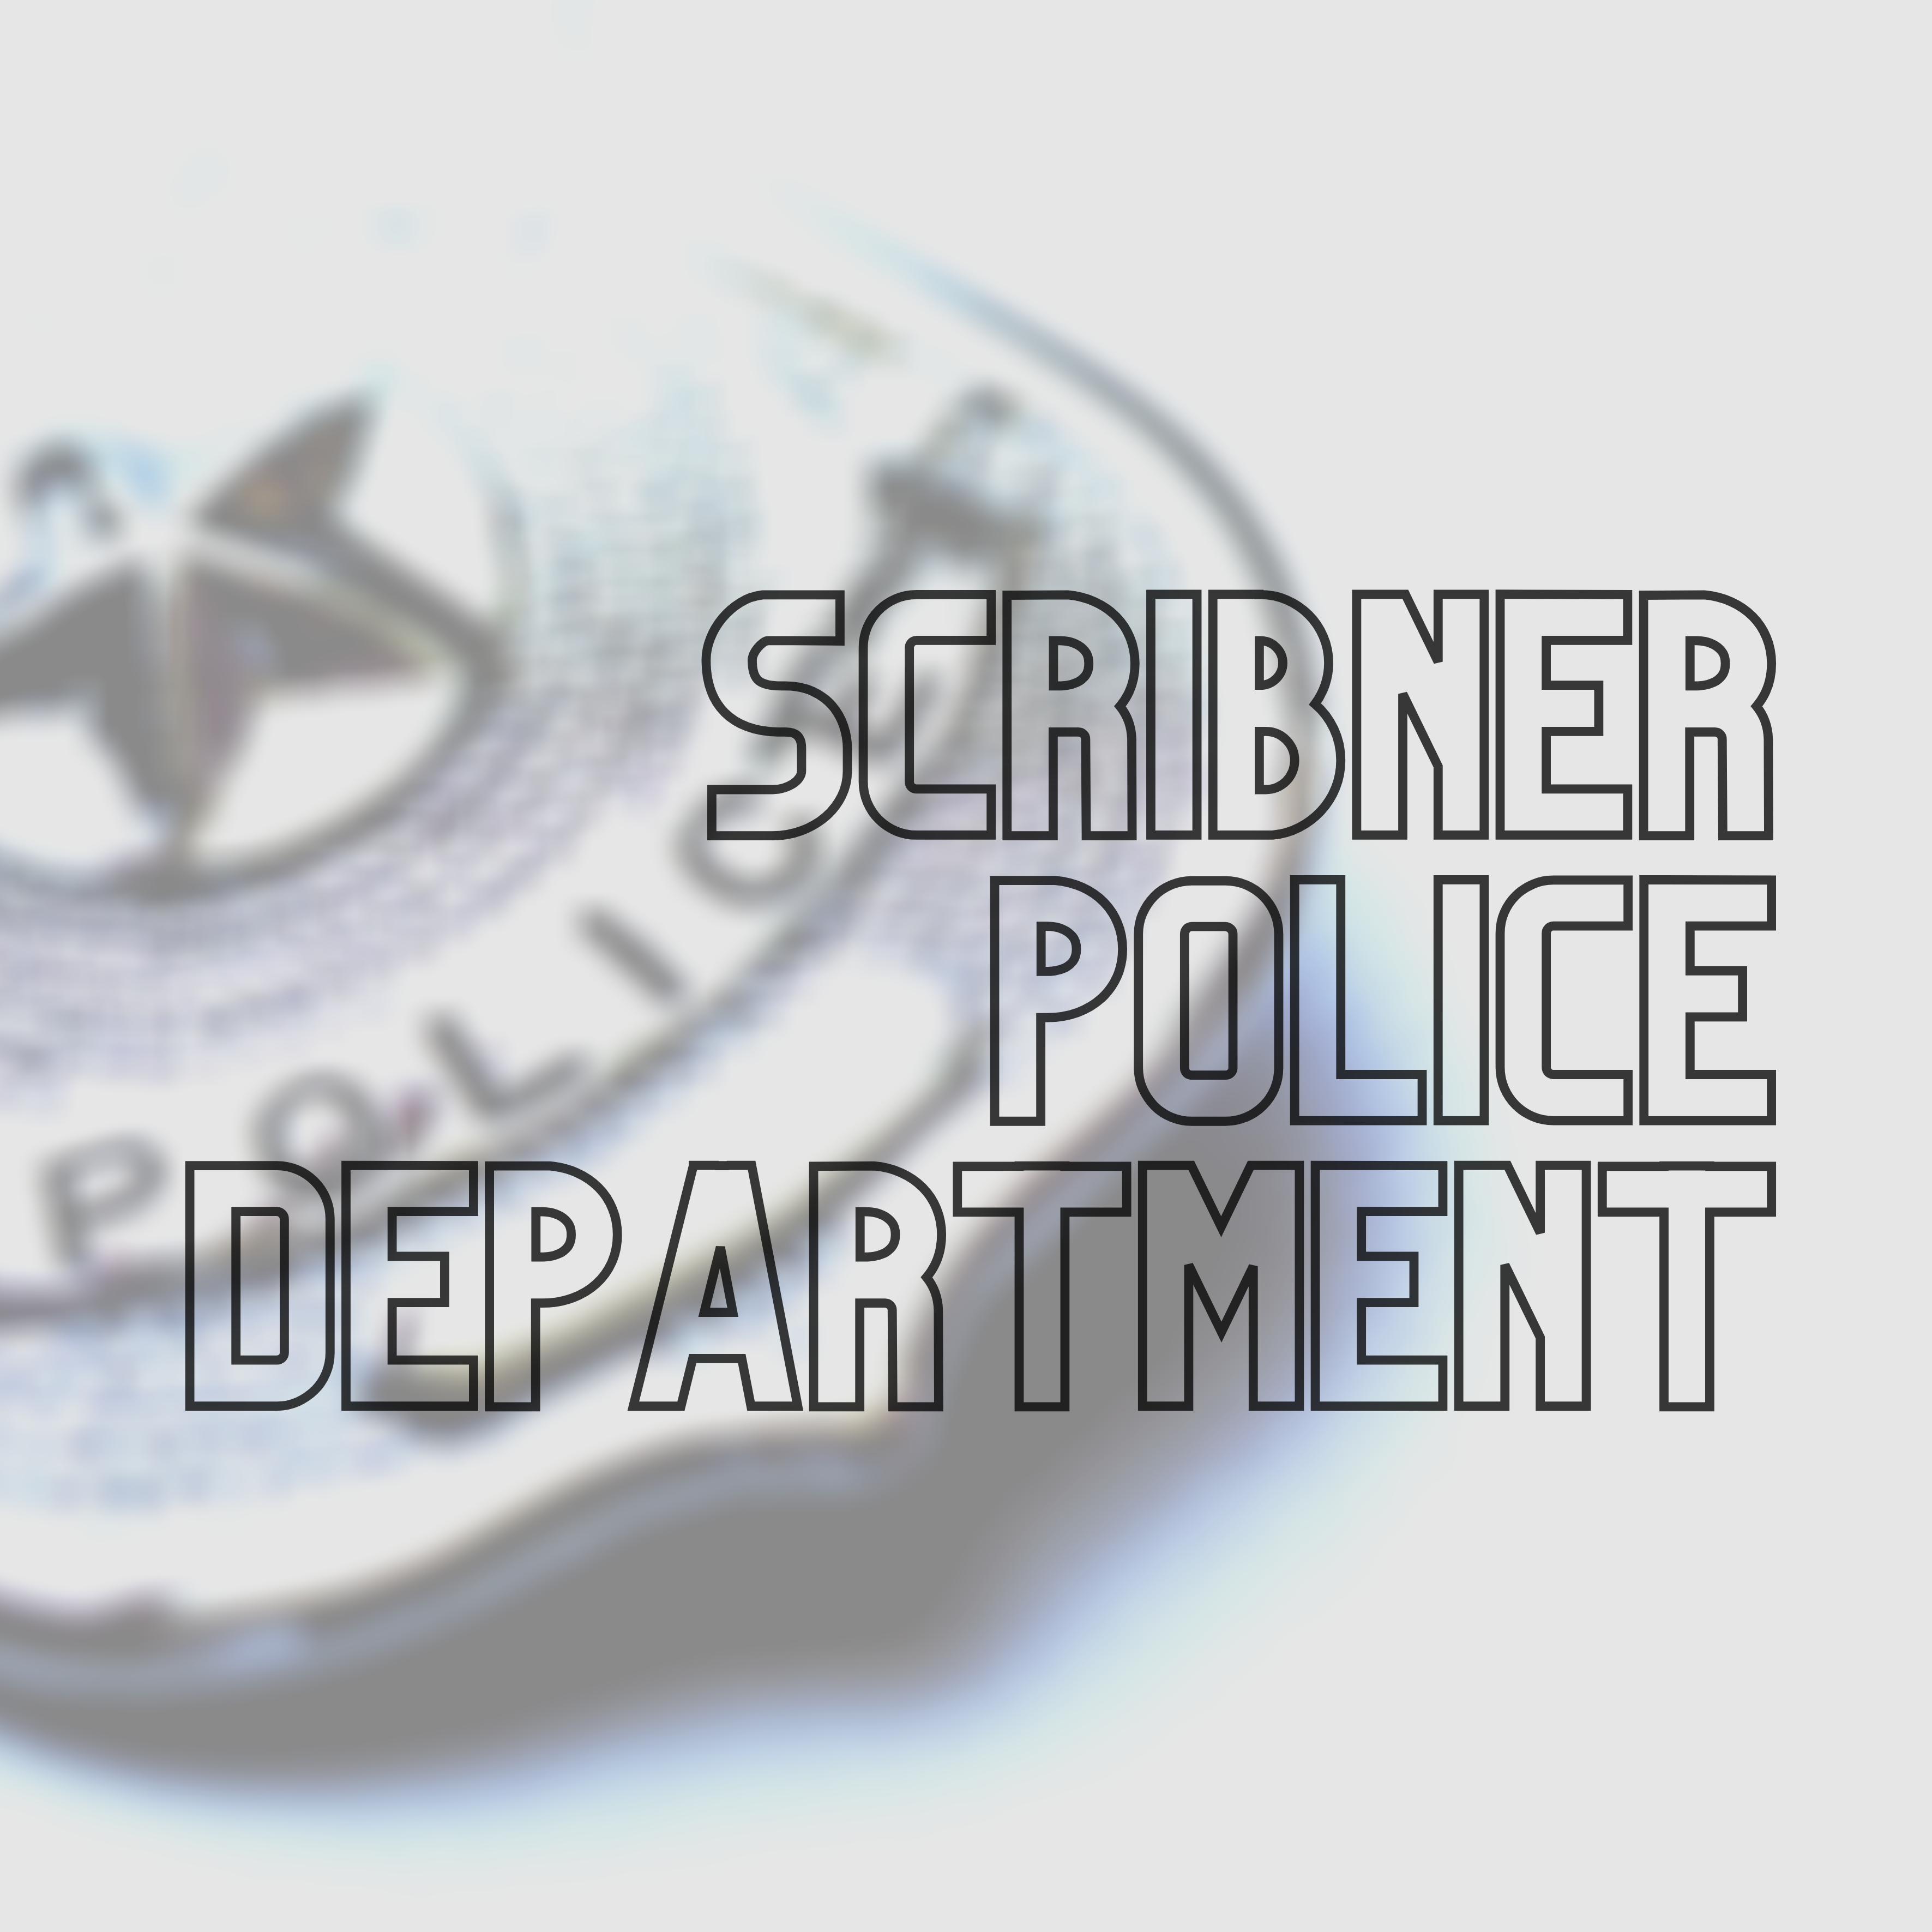 Police badge with Scribner Police Department written over it